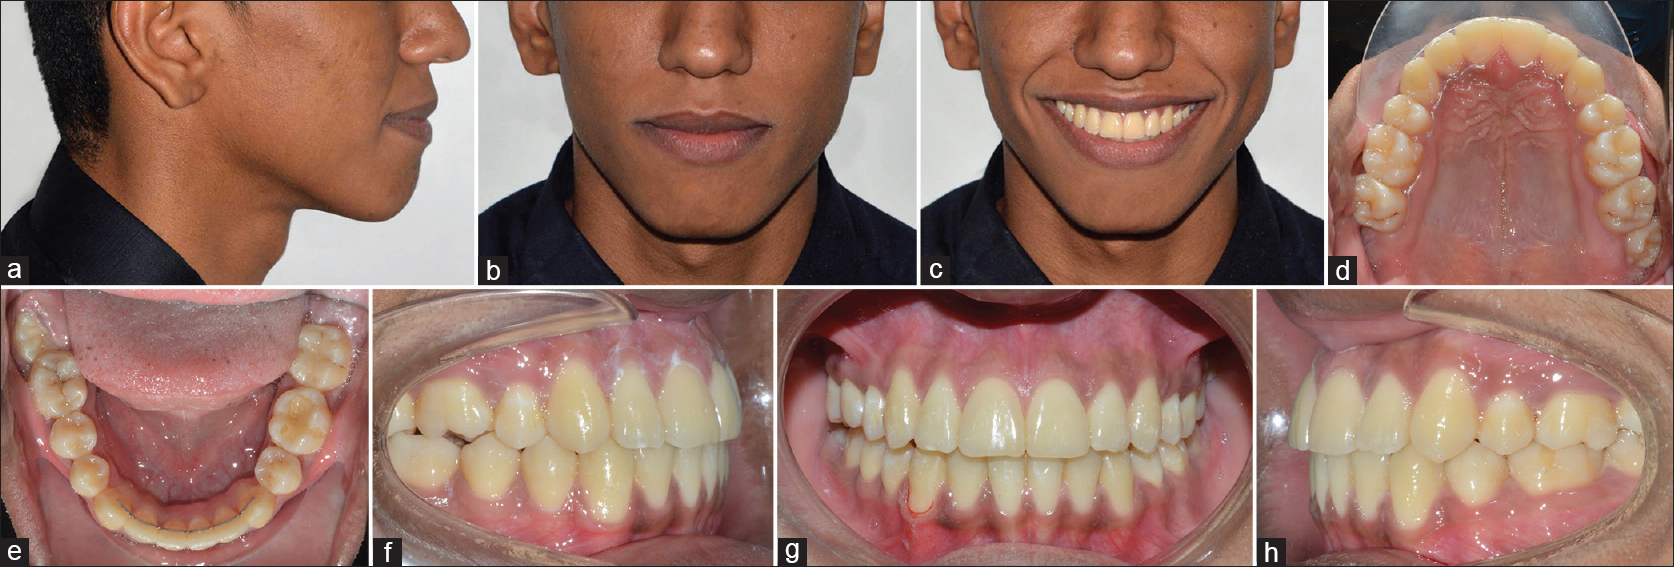 Figure 8: (a-h) Posttreatment extra-oral and intra-oral photographs